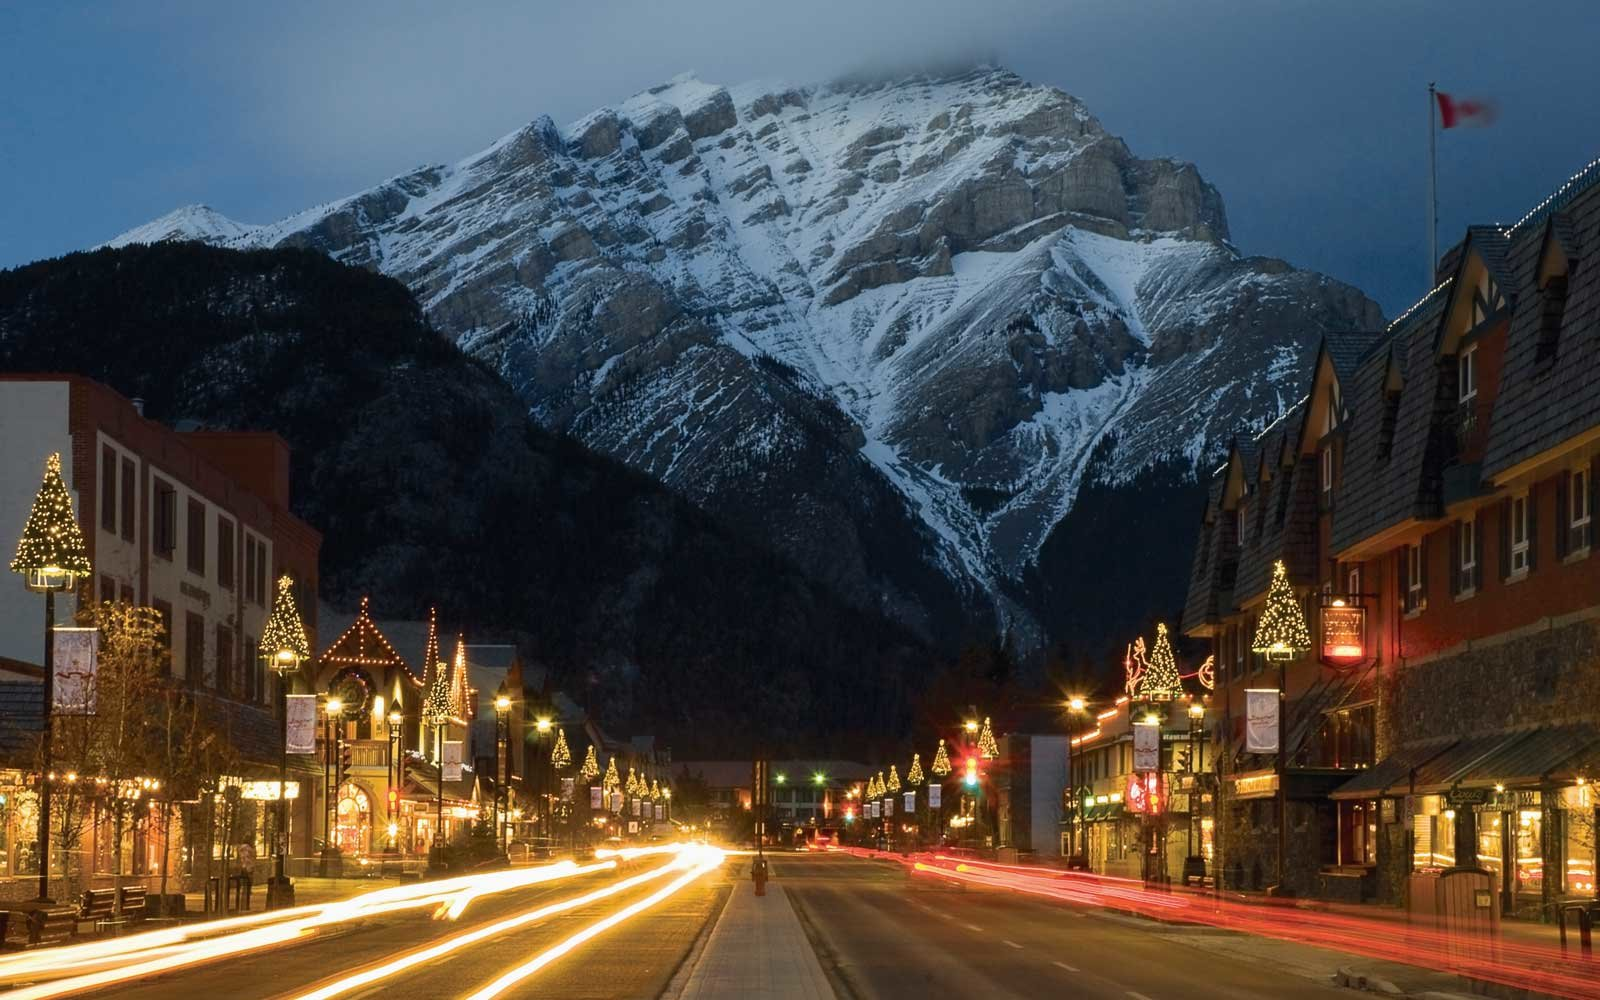 Explore Canada's spectacular scenery while enjoying traditional holiday meals on this eight-day trip.